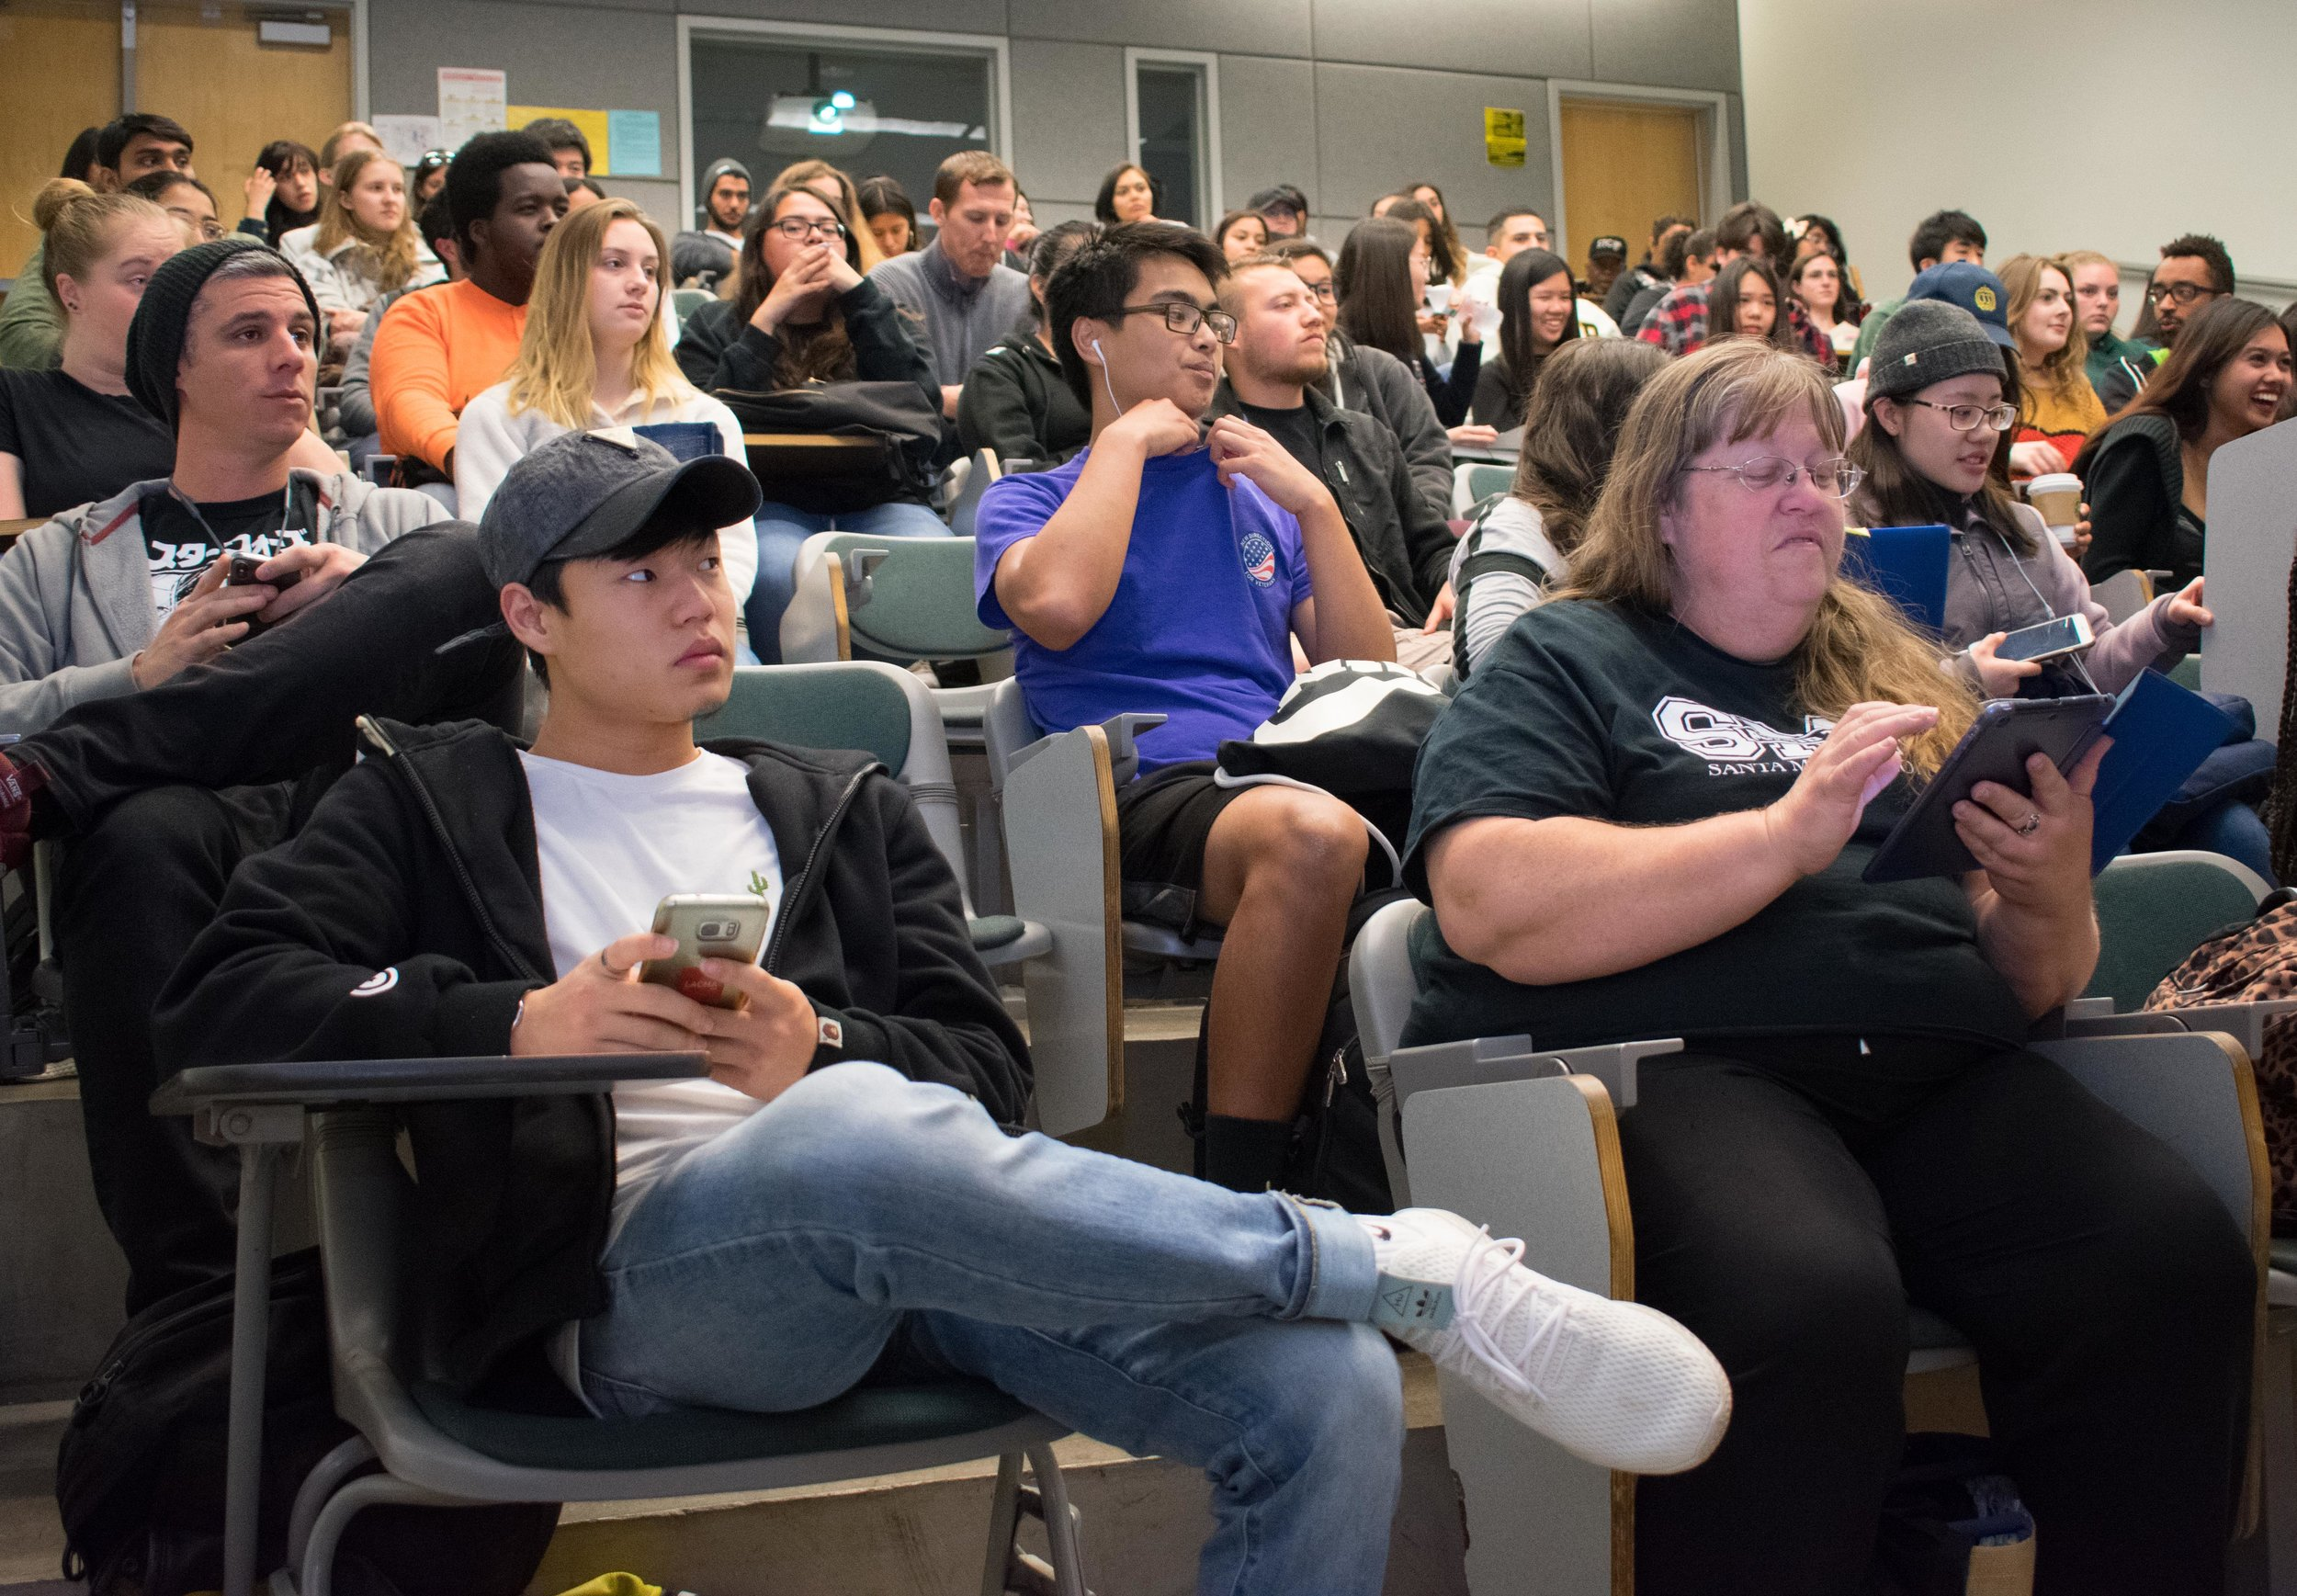 Sheng Min Sun, left, the Vice President of Service and members of Phi Theta Kappa, an honor society at Santa Monica College meet in the Science building, room 140 at 11:15 a.m. for the weekly meeting on Tuesday, March 20 in Santa Monica, California. Students wishing to join must pay an $80 membership fee, which is a one-time fee during their time at the college, but students have to maintain a 3.0 GPA. Benefits that PTK advertise are scholarships, volunteer opportunities, and a transcript notation. (Ethan Lauren/Corsair Photo)